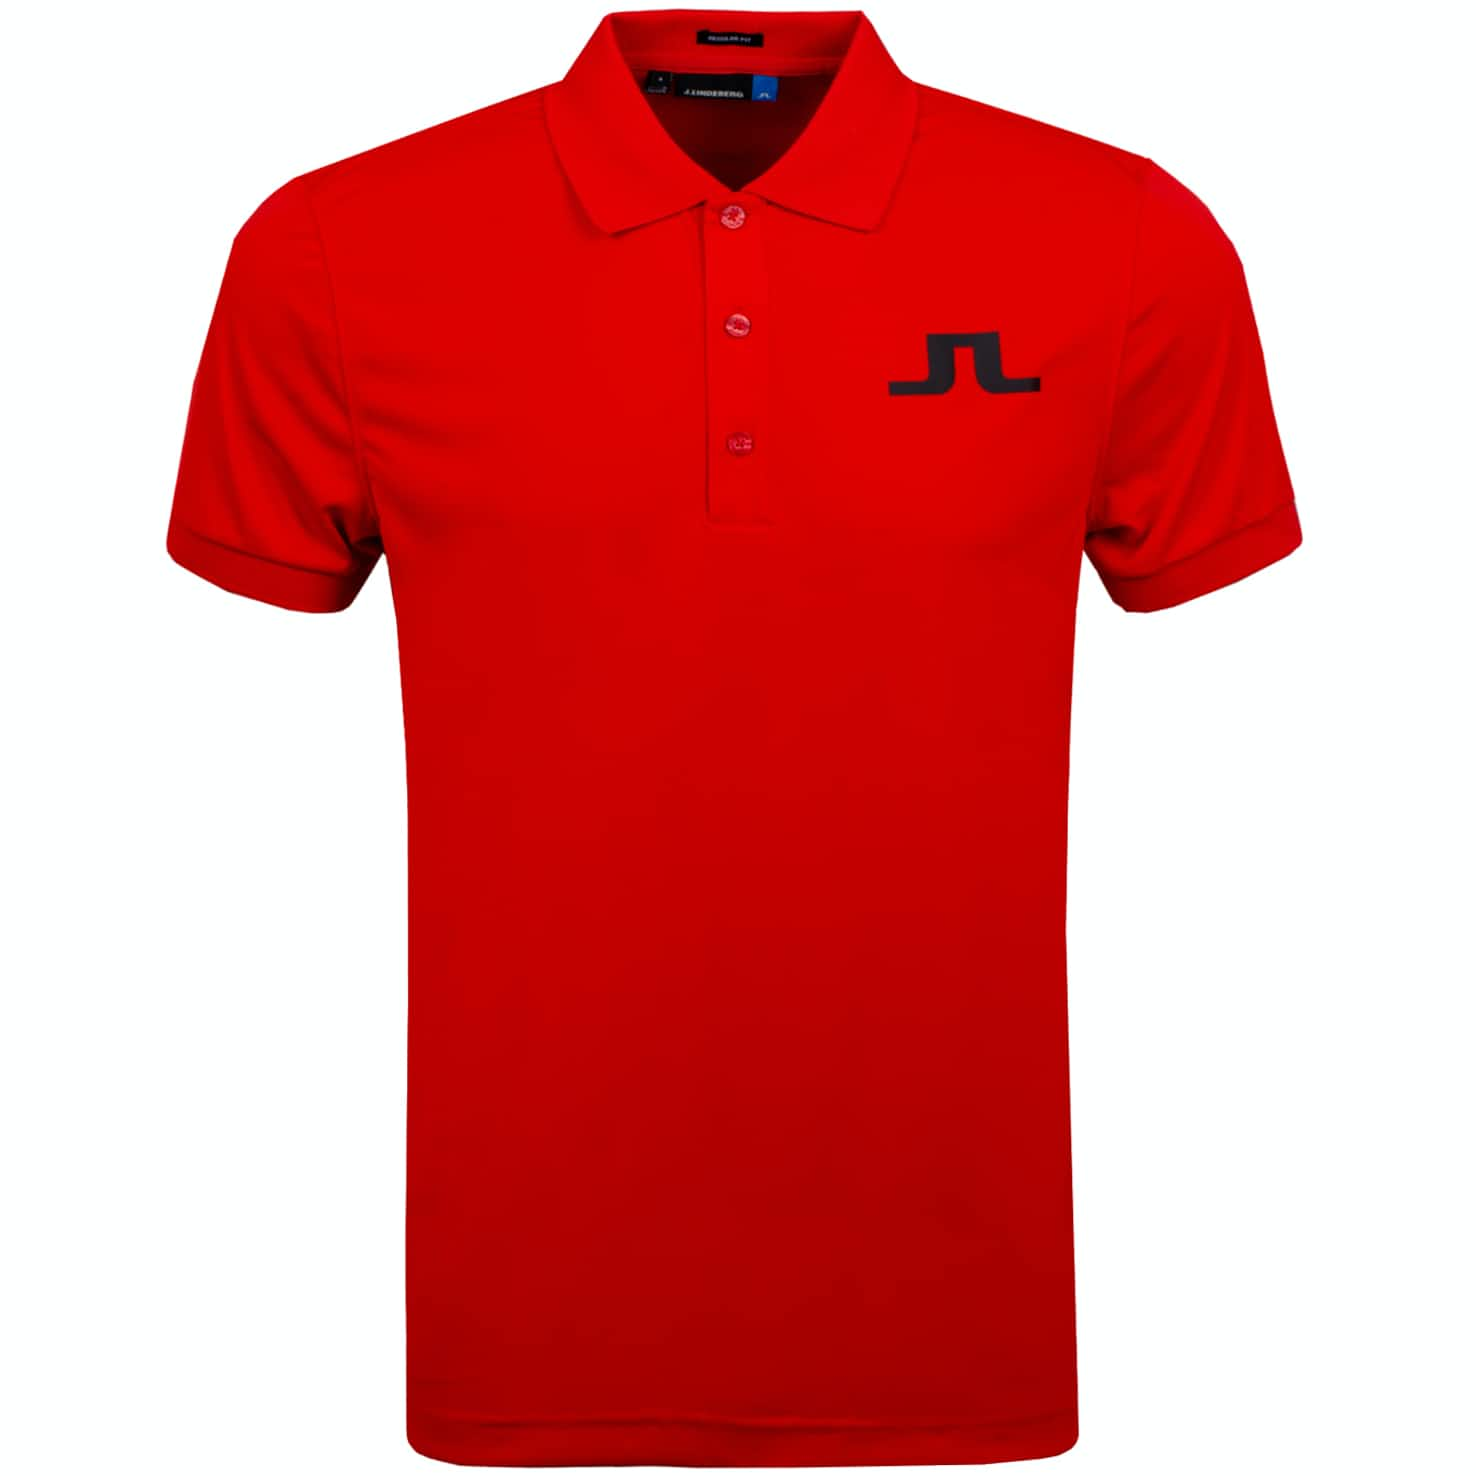 Big Bridge Regular TX Jersey Racing Red - AW19